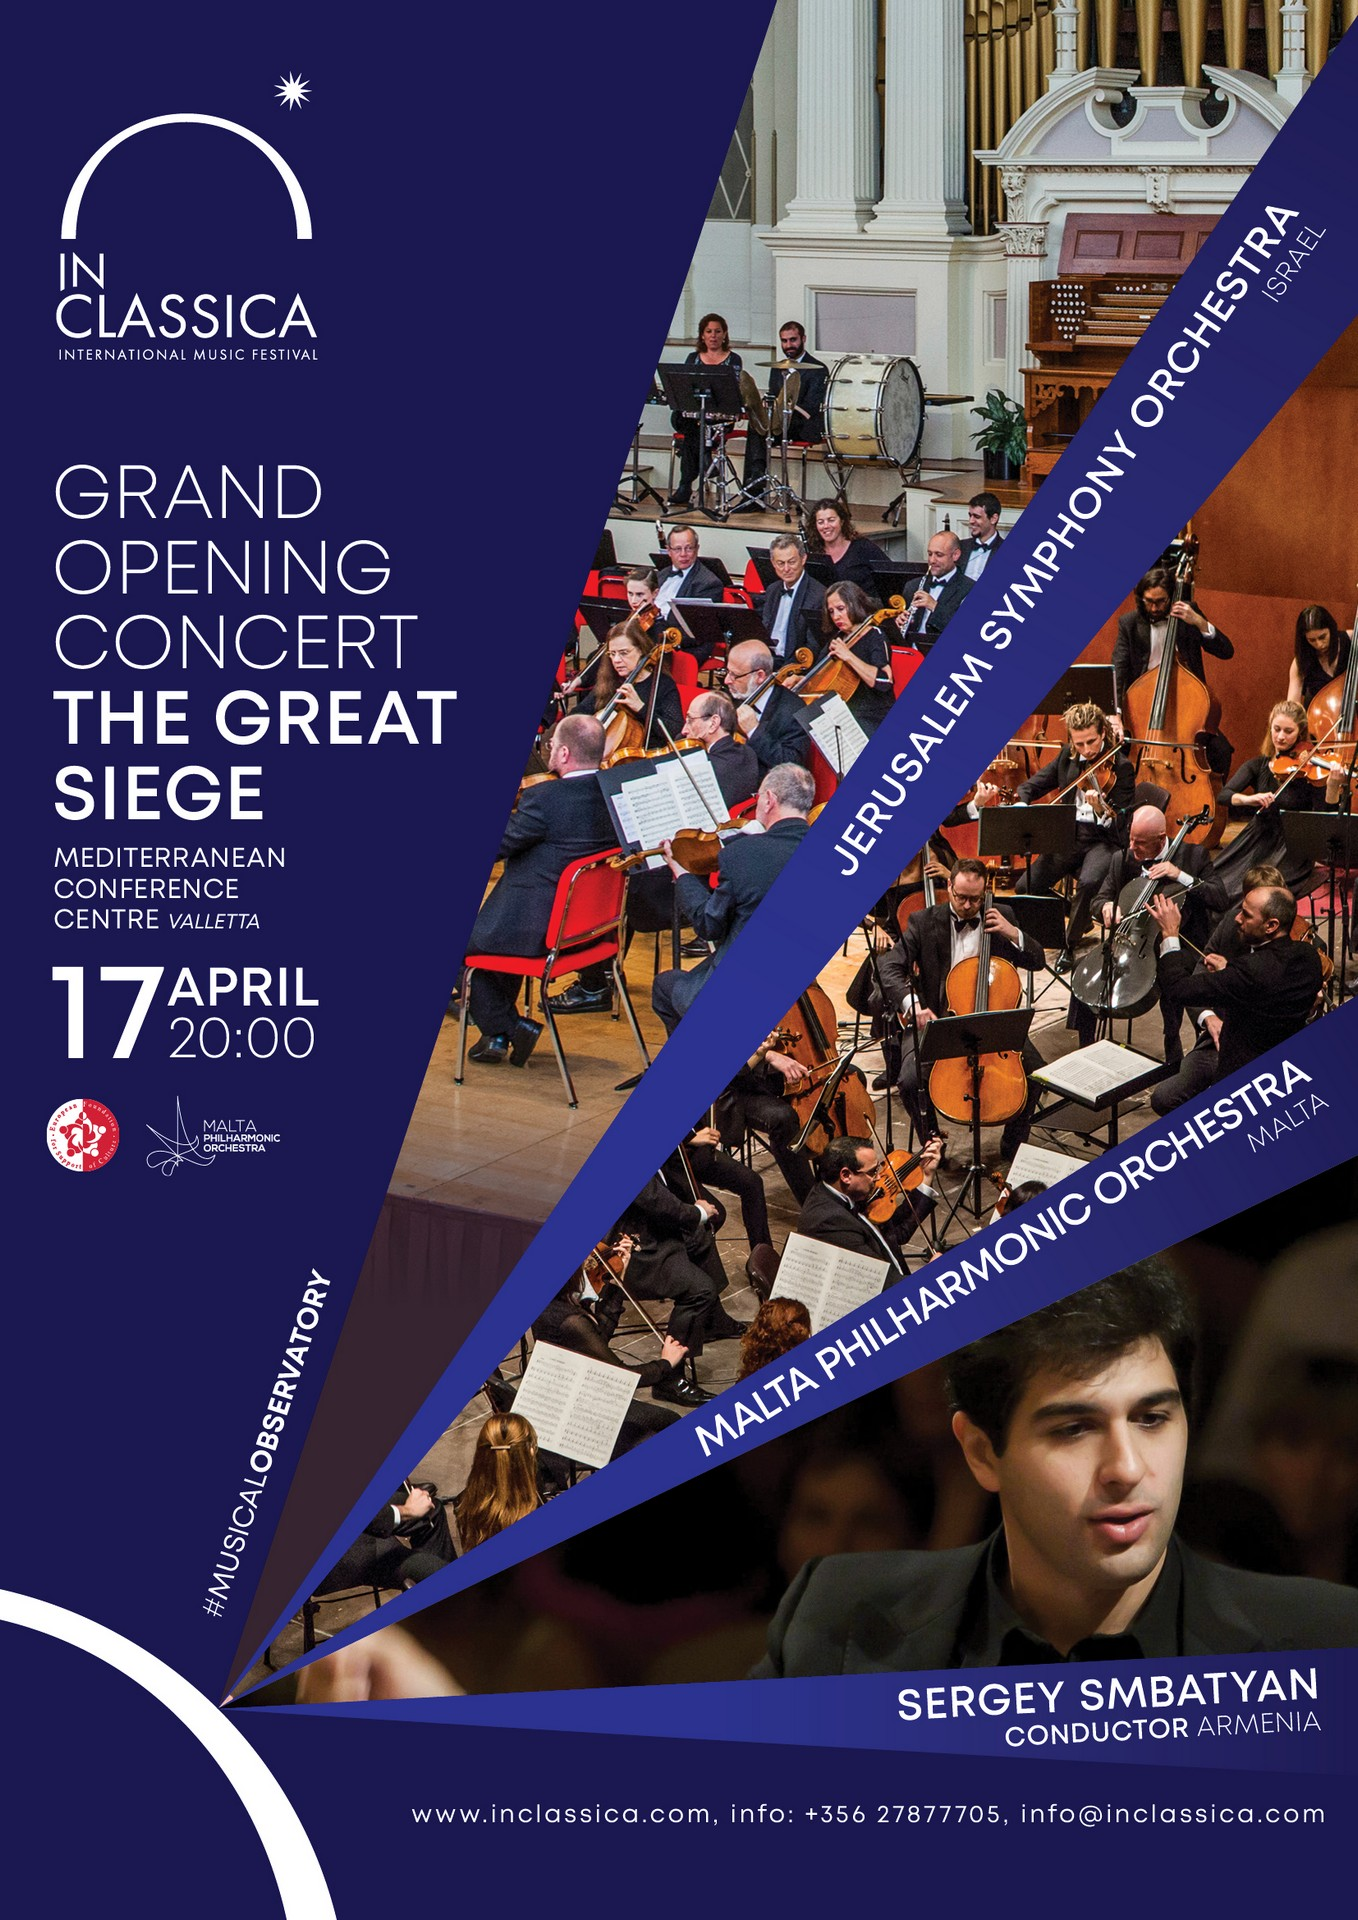 InClassica: GRAND OPENING CONCERT | THE GREAT SIEGE flyer